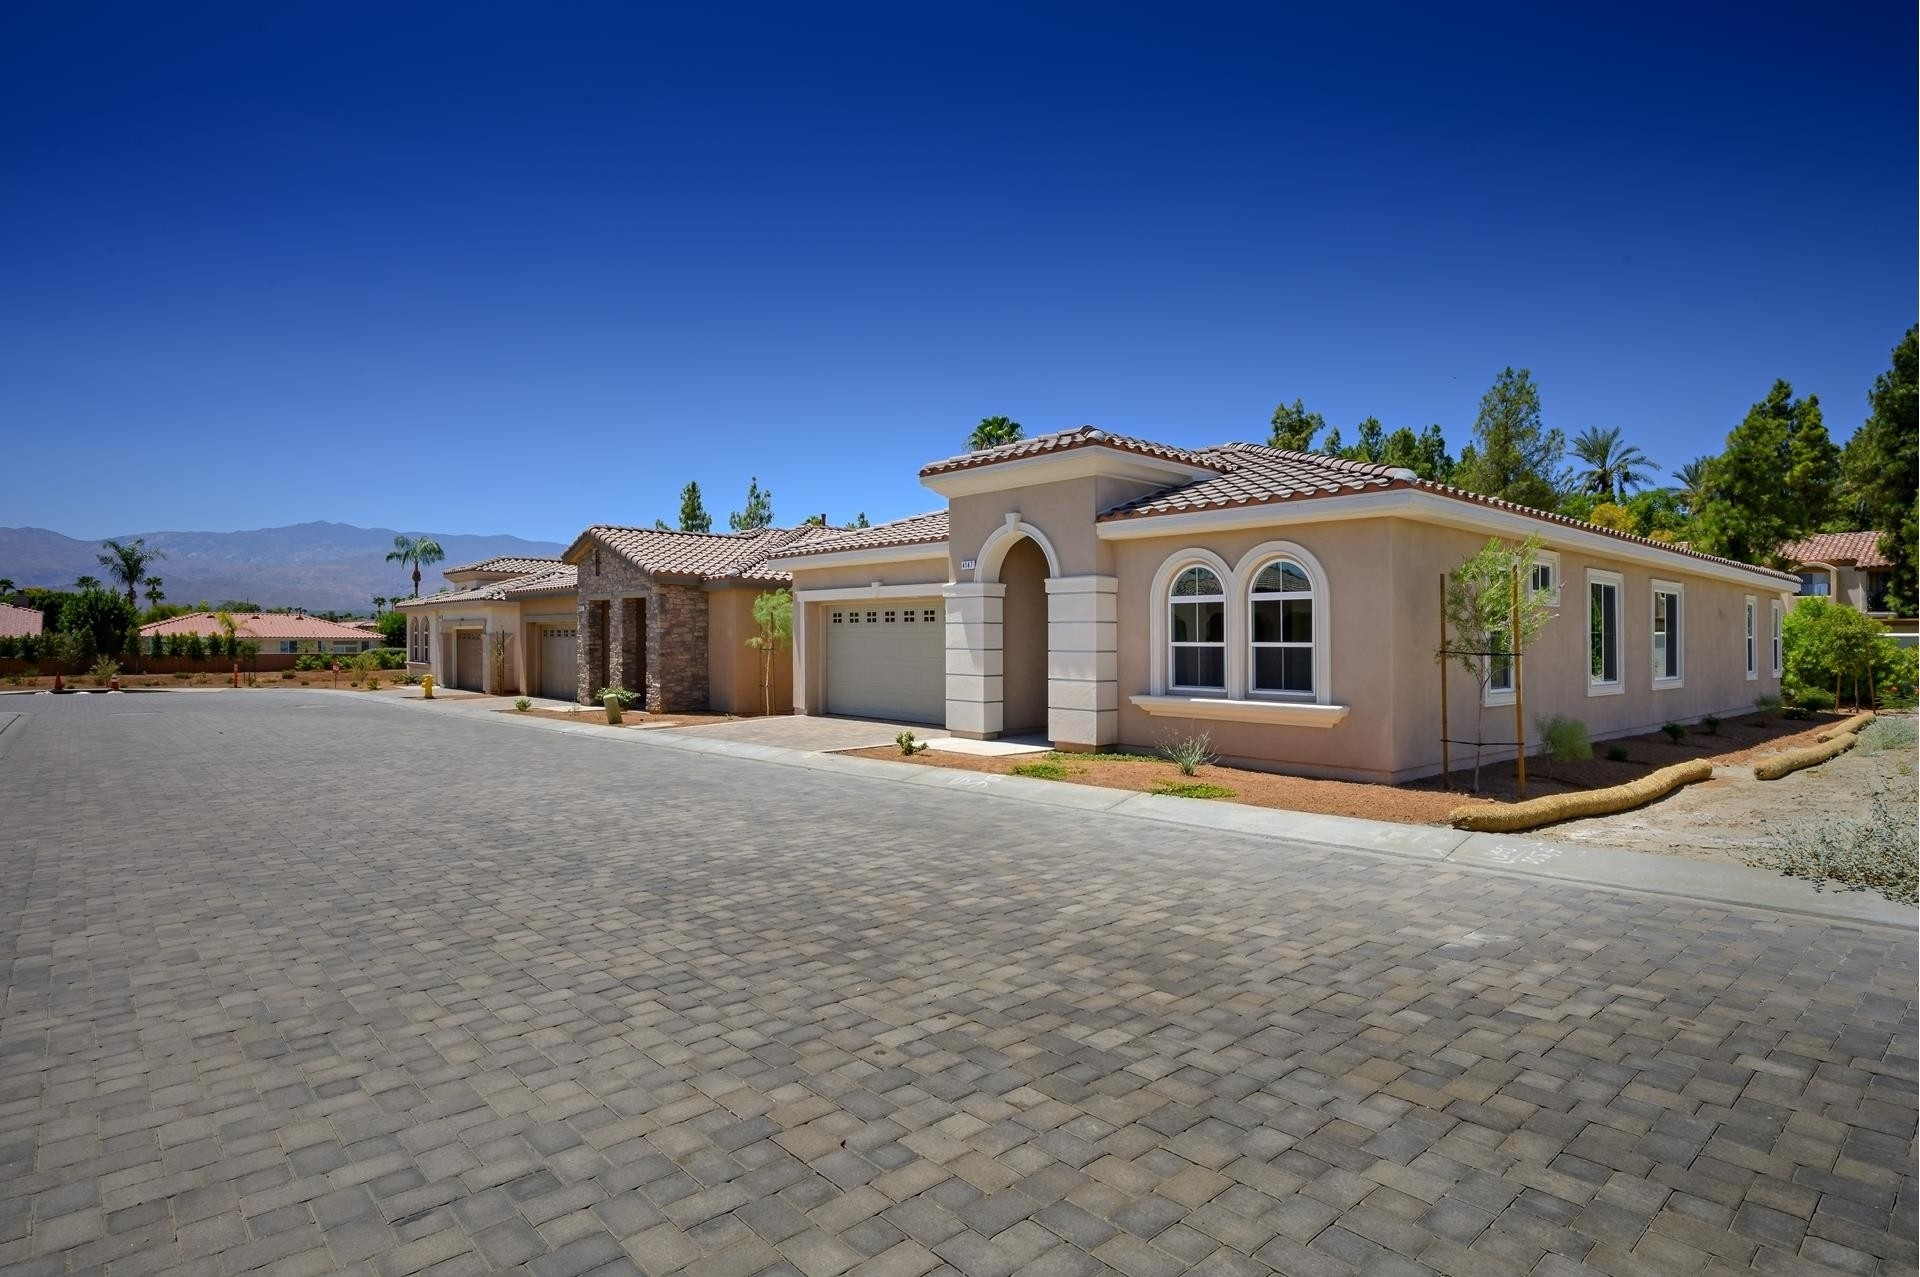 Single Family Home for Sale at Palma Village Groves, Palm Desert, CA 92260